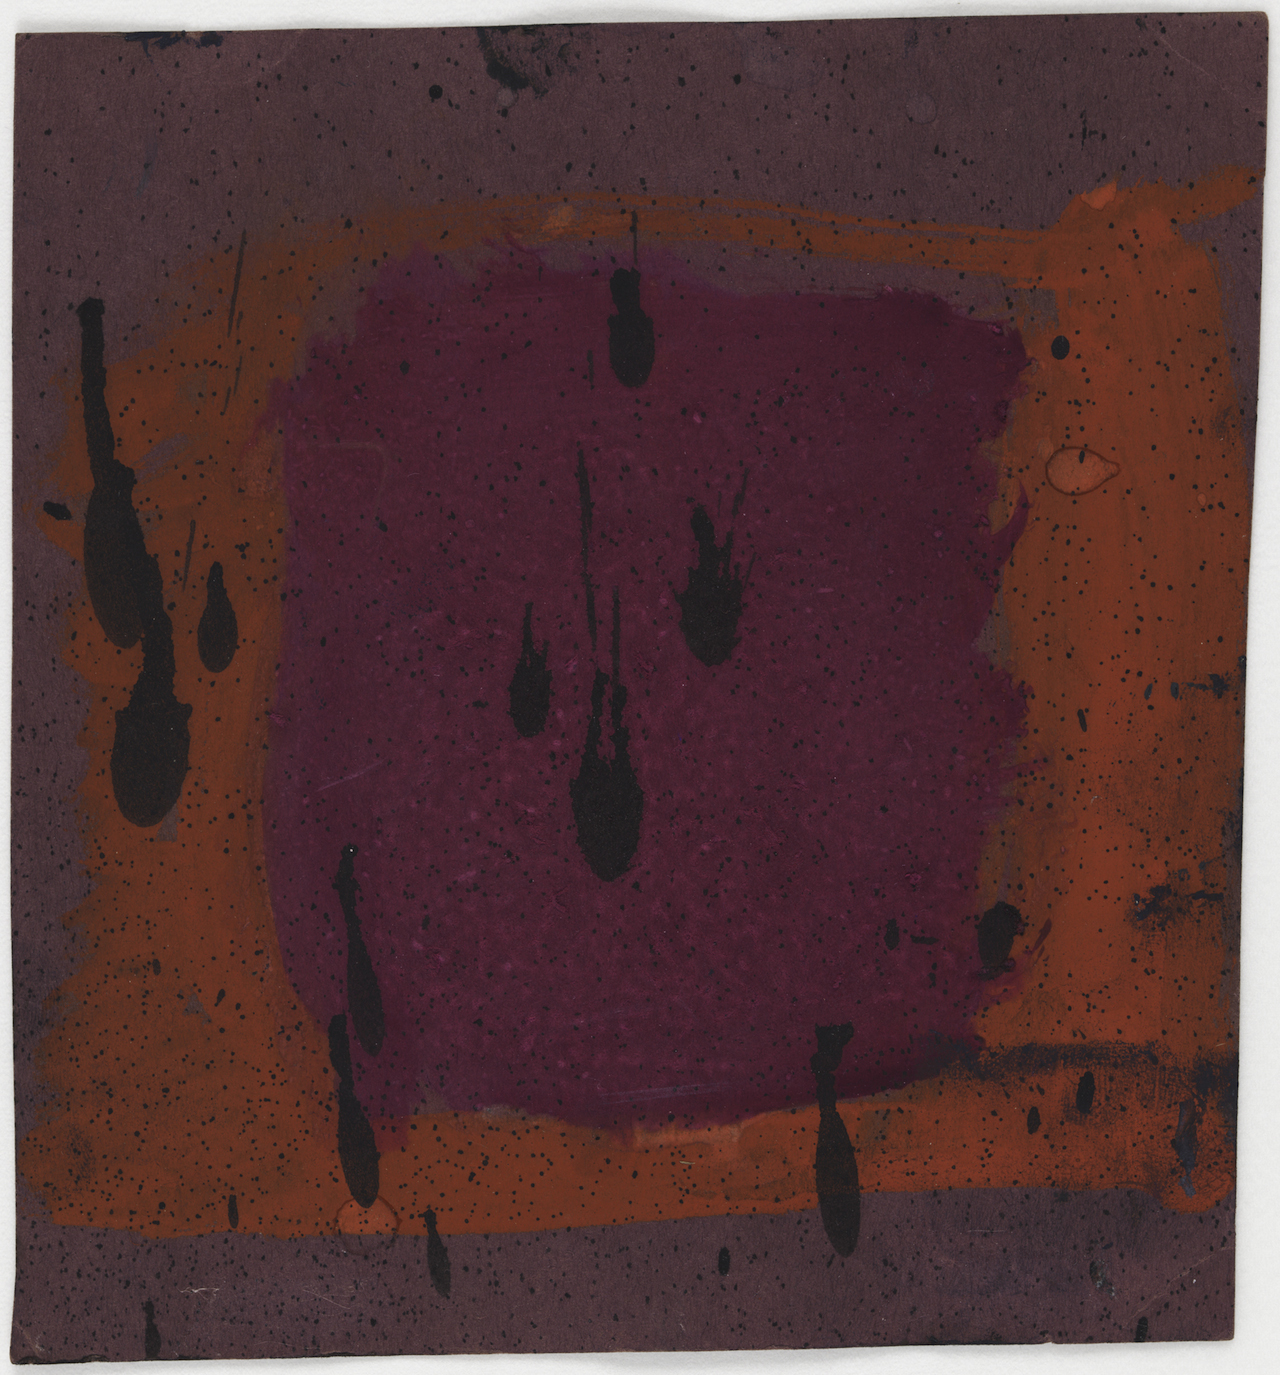 Rothko-Untitled Study for HM_1986.473 verso_DDC234008